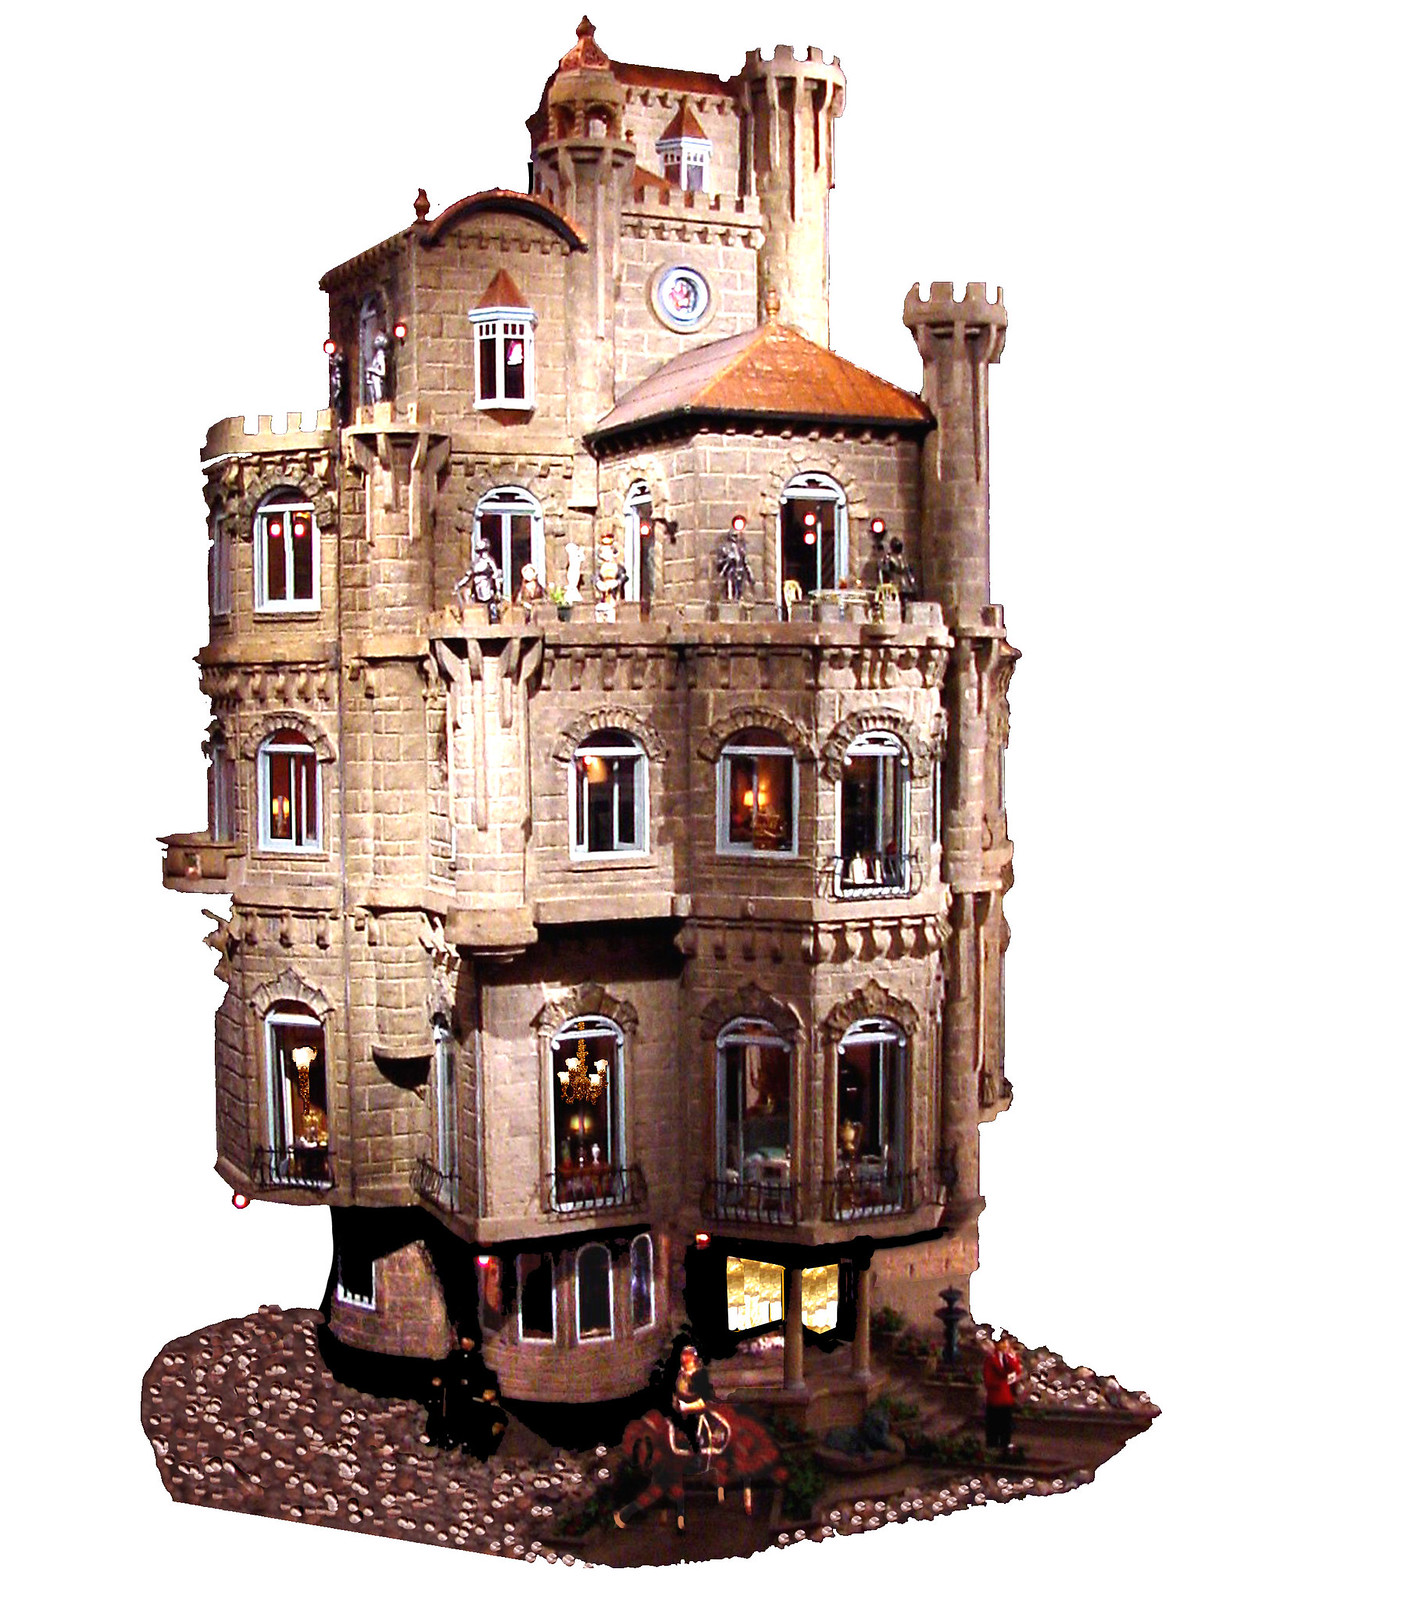 Exterior of the Astolat Dollhouse Castle, built between 1976 and 1986 in USA. Credit Dr Michael and Lois Freeman